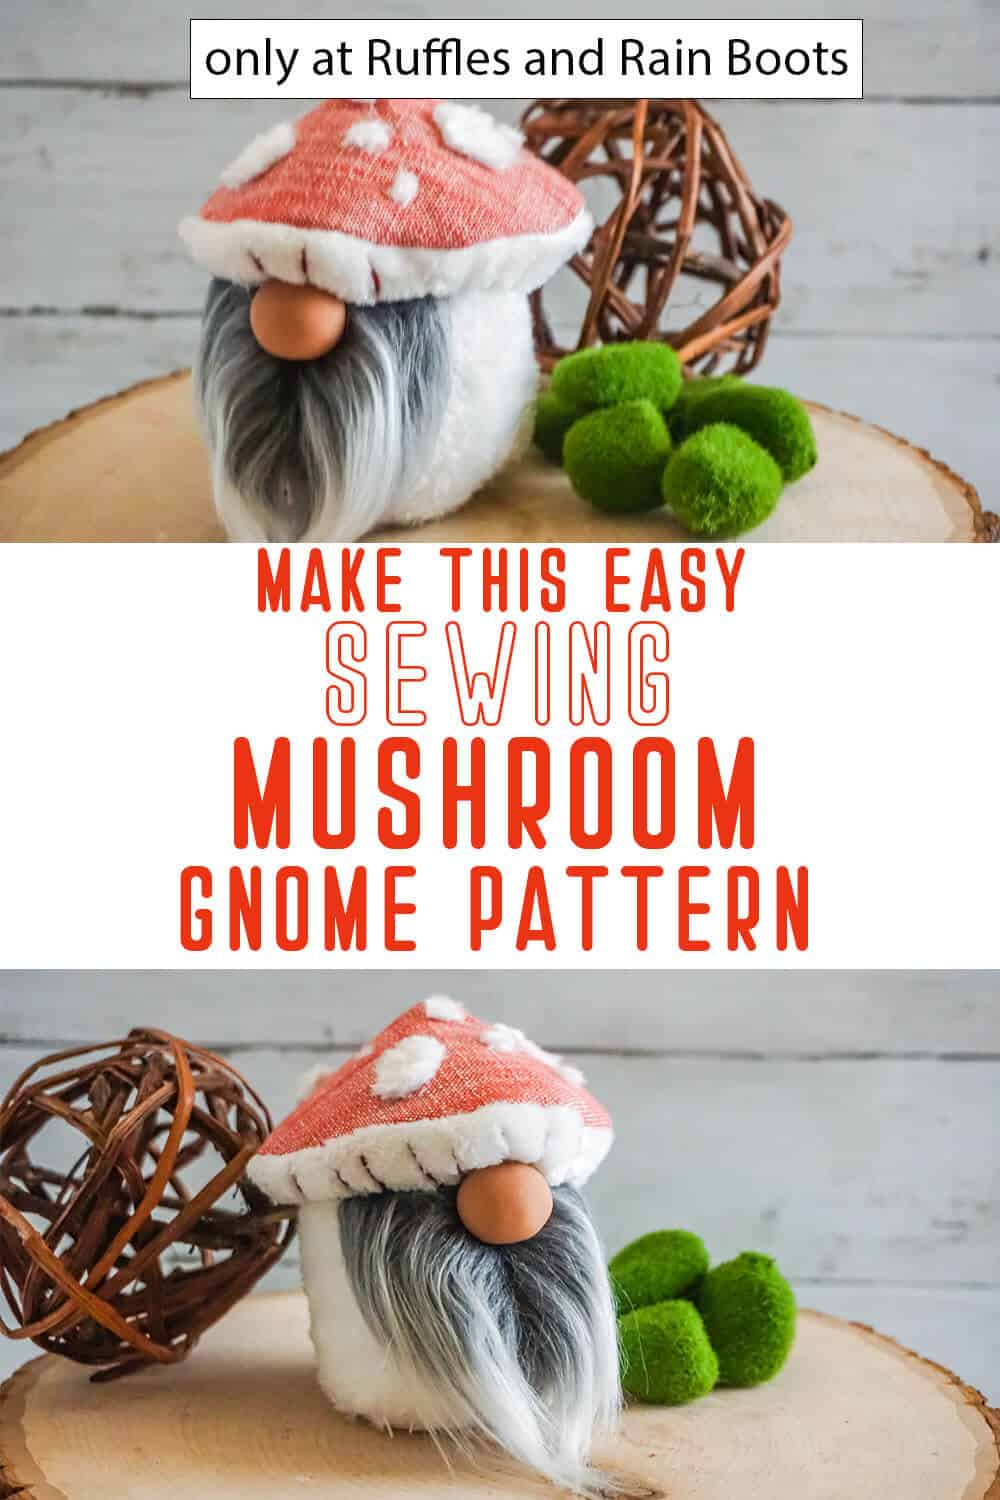 photo collage of mushroom cap gnome pattern gnome sewing pattern with text which reads make this easy sewing mushroom gnome pattern